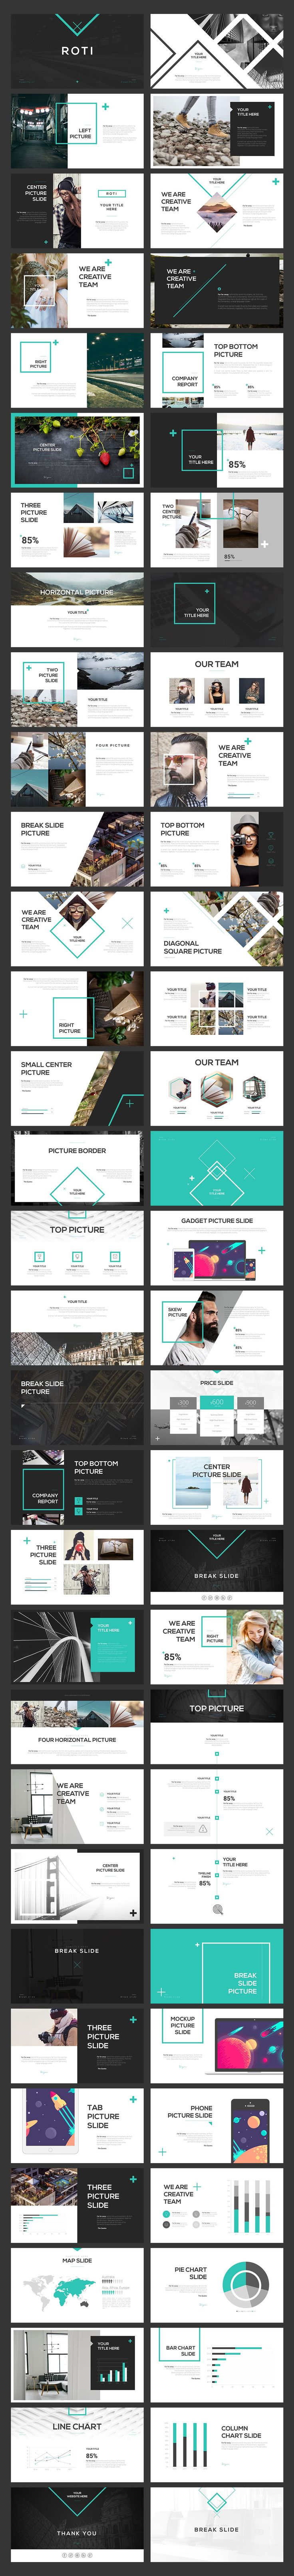 ROTI Powerful and Amazing PowerPoint Template Download Now #Presentation #slides #PPT #startups Download Now➝ https://creativemarket.com/angkalimabelas/581732-ROTI-PowerPoint-Template?u=Datasata